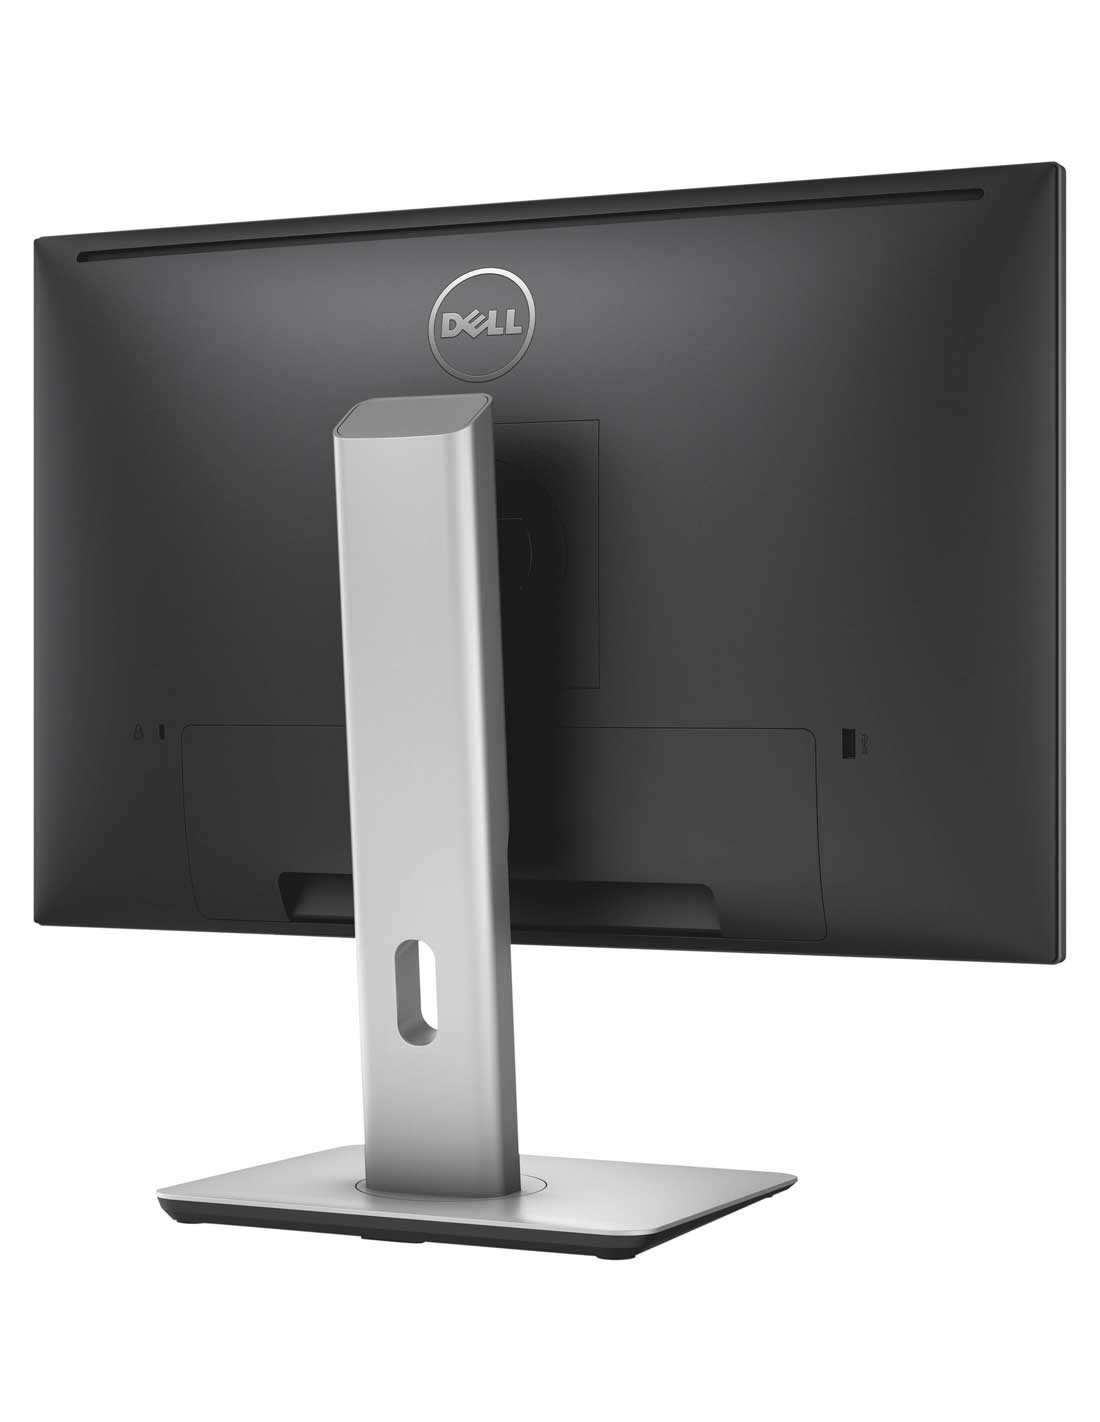 Dell UltraSharp 24 Monitor U2415 images and photos in Dubai online store